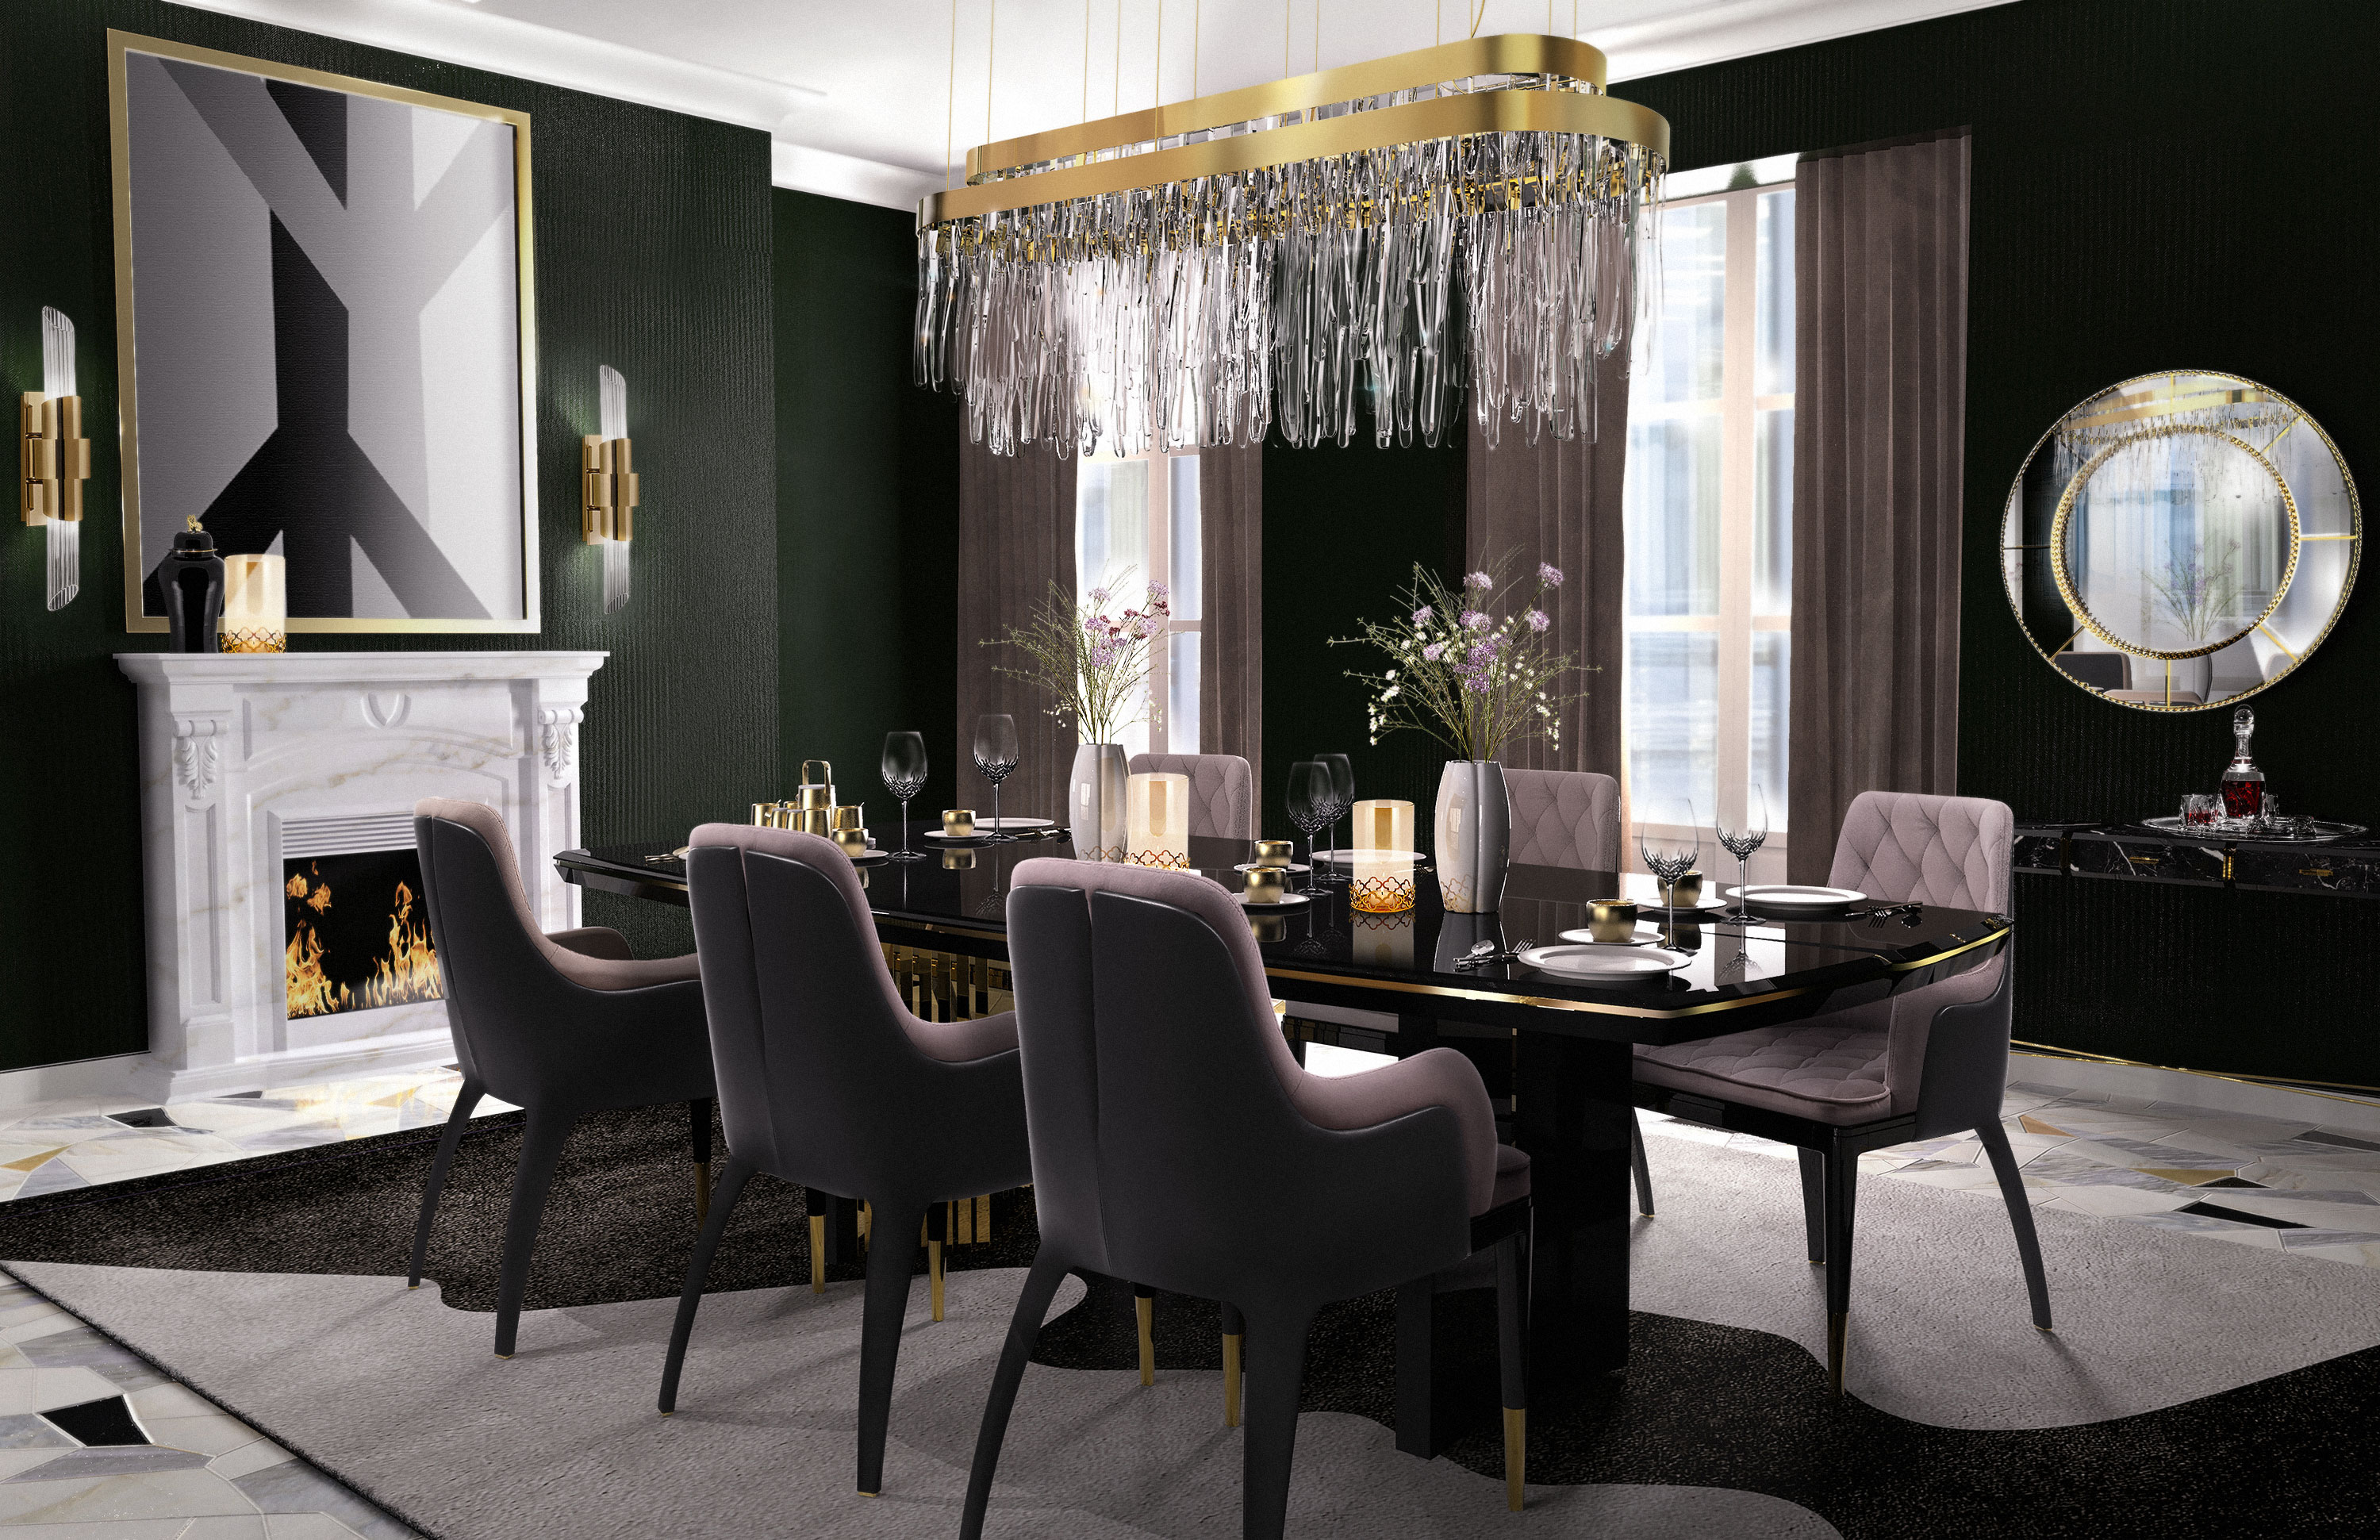 Dining Room Ideas Blog Elegant Dining Room Ideas You Have To Use This Fall